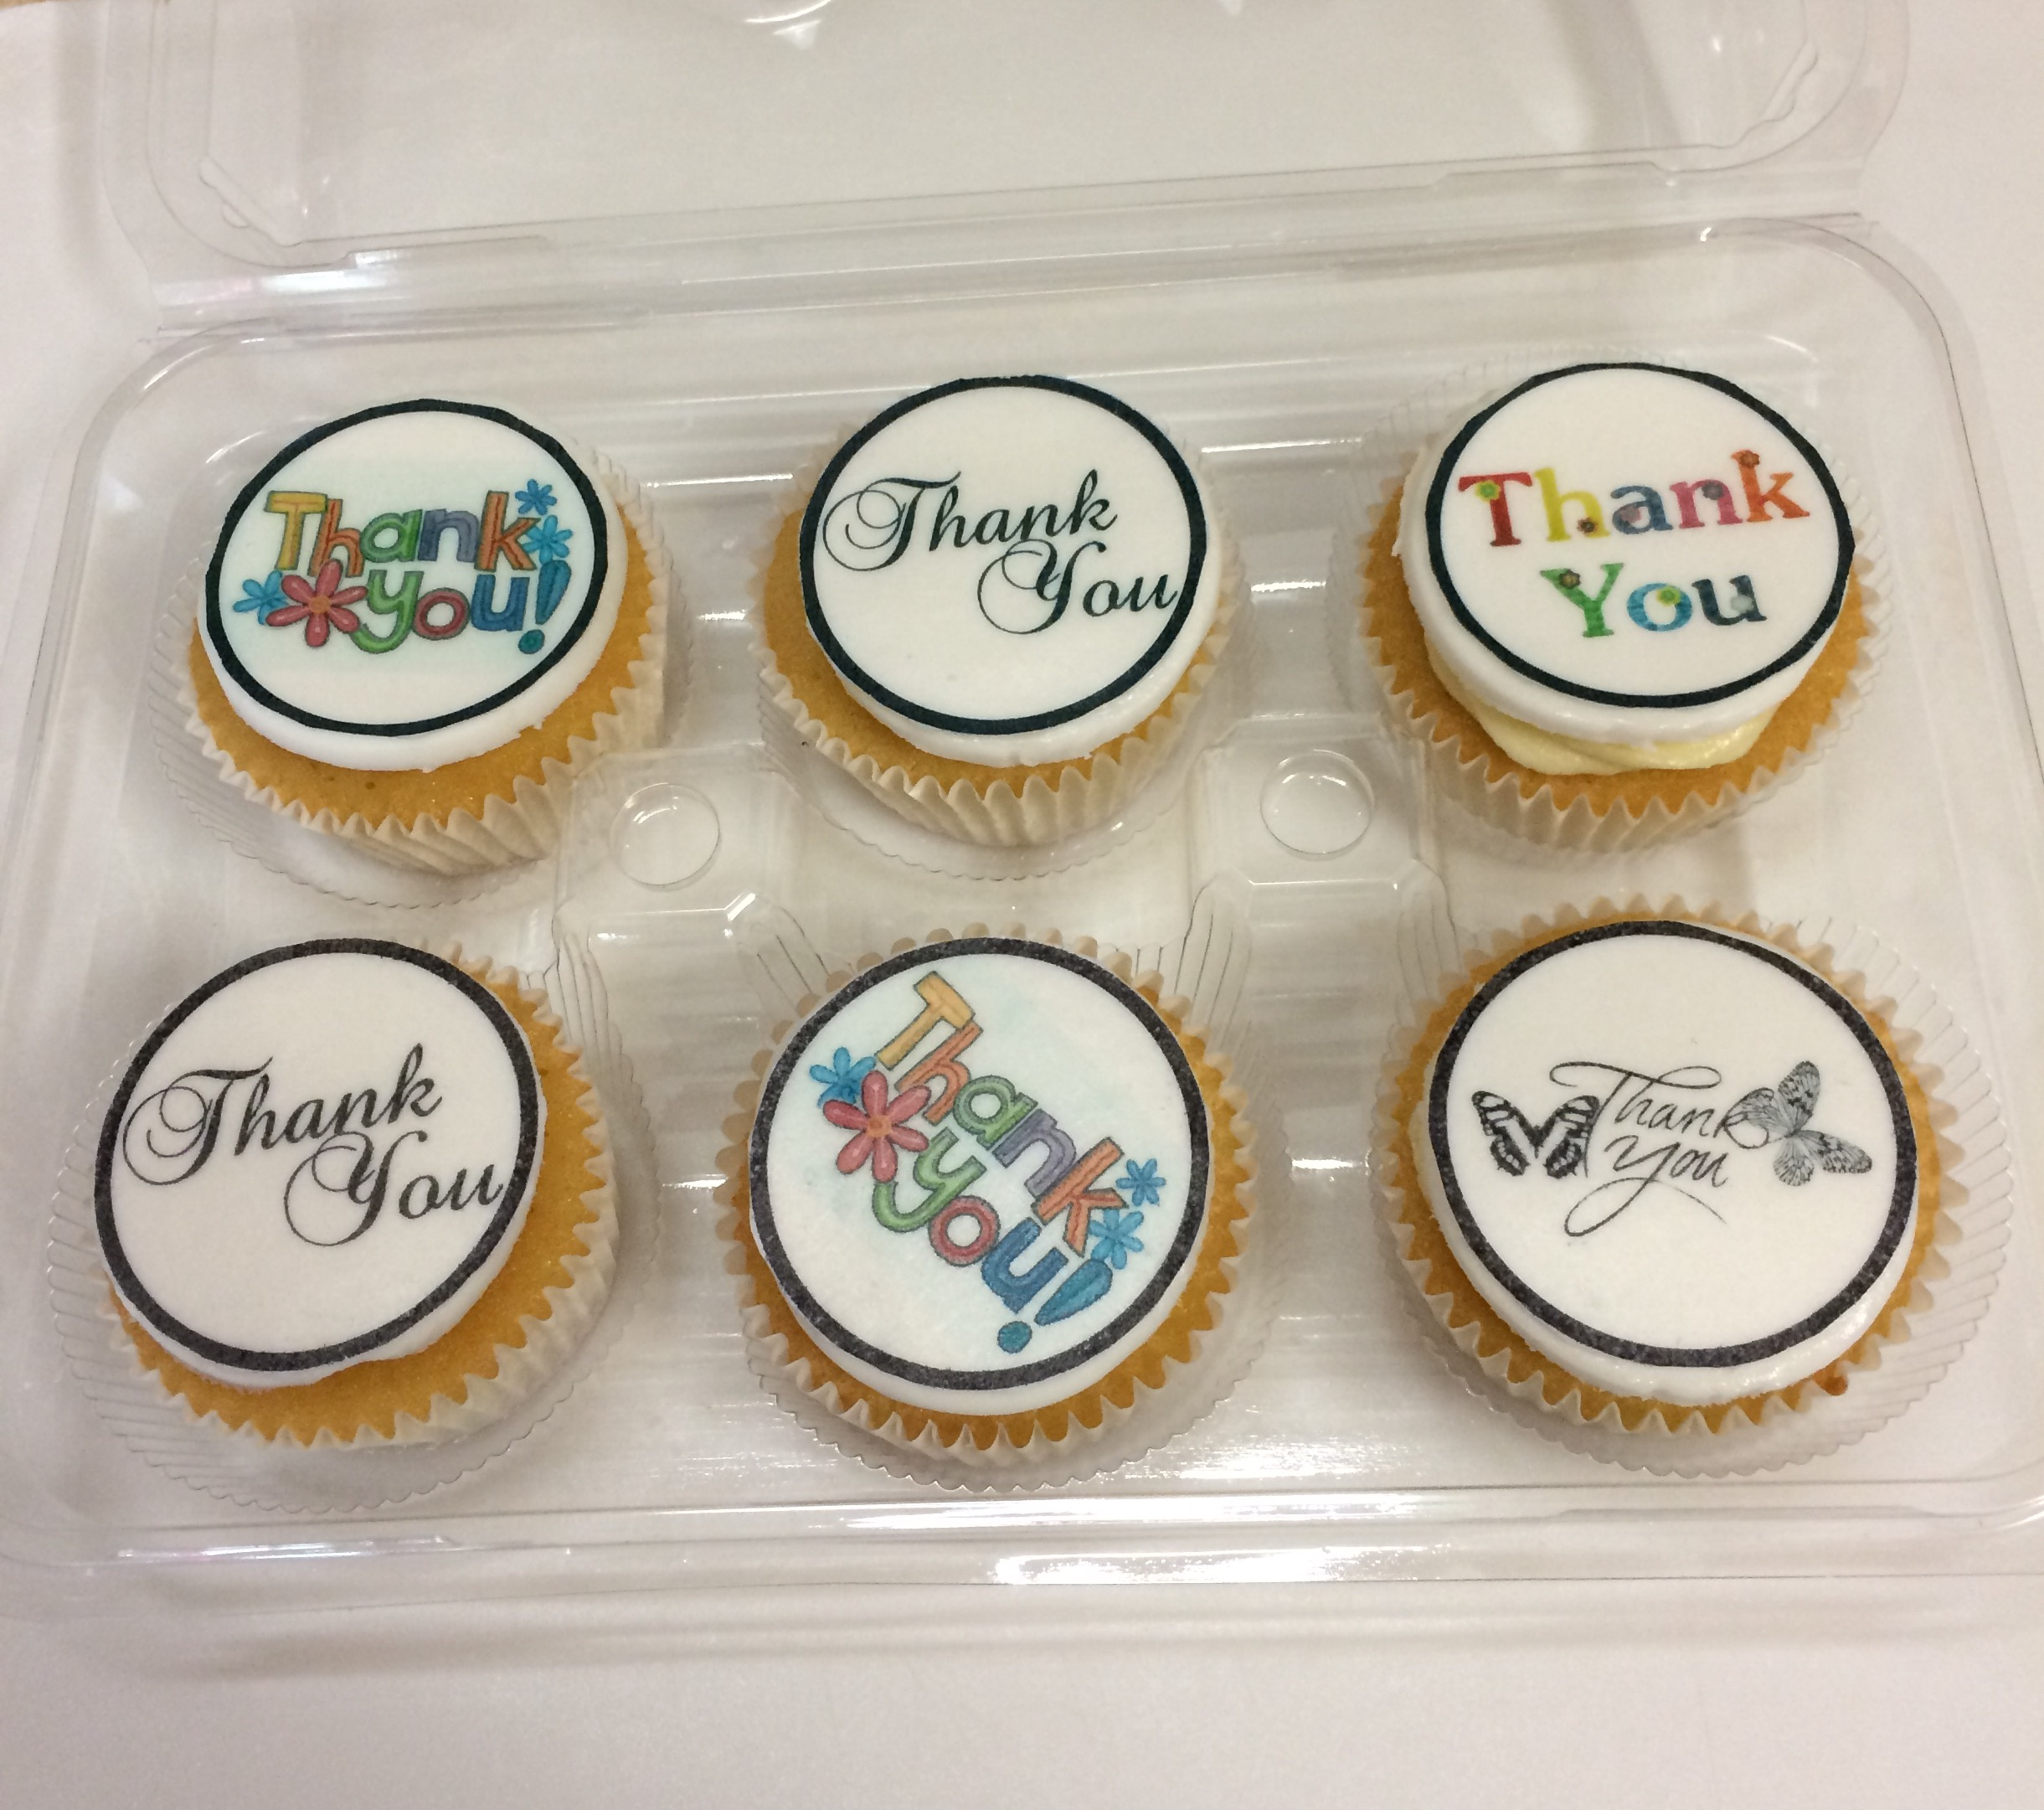 'Thank you' say it with a cupcake